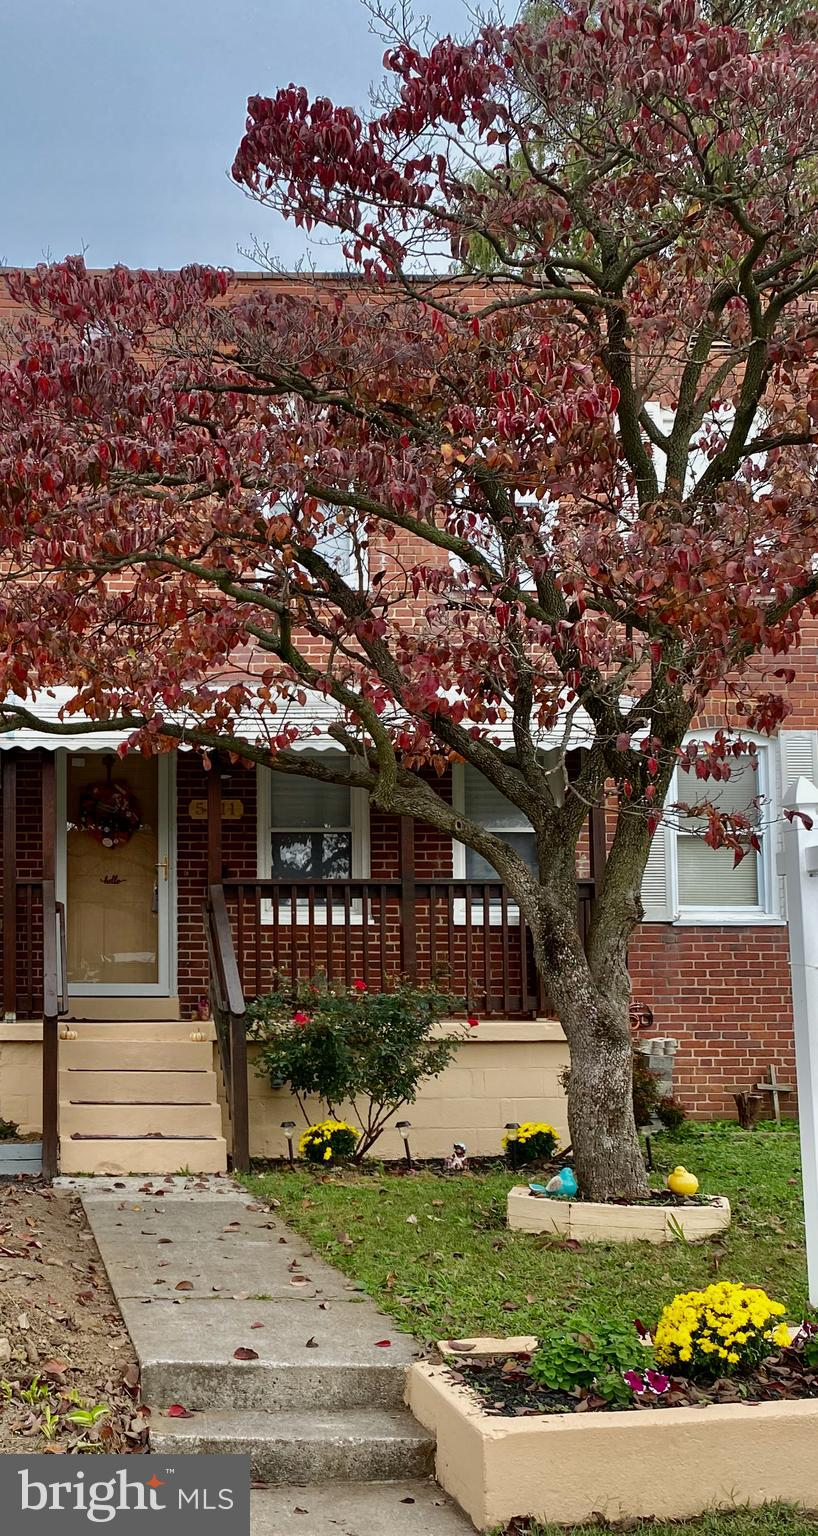 Why rent when you could own? This cozy 2BR, 1BA townhome has many new updates. New roof!! New carpet and laminate flooring! New hot water heater! New ceiling fans! Front loading washer and dryer! Fresh paint throughout! Large backyard with new concrete patio! What are you waiting for?